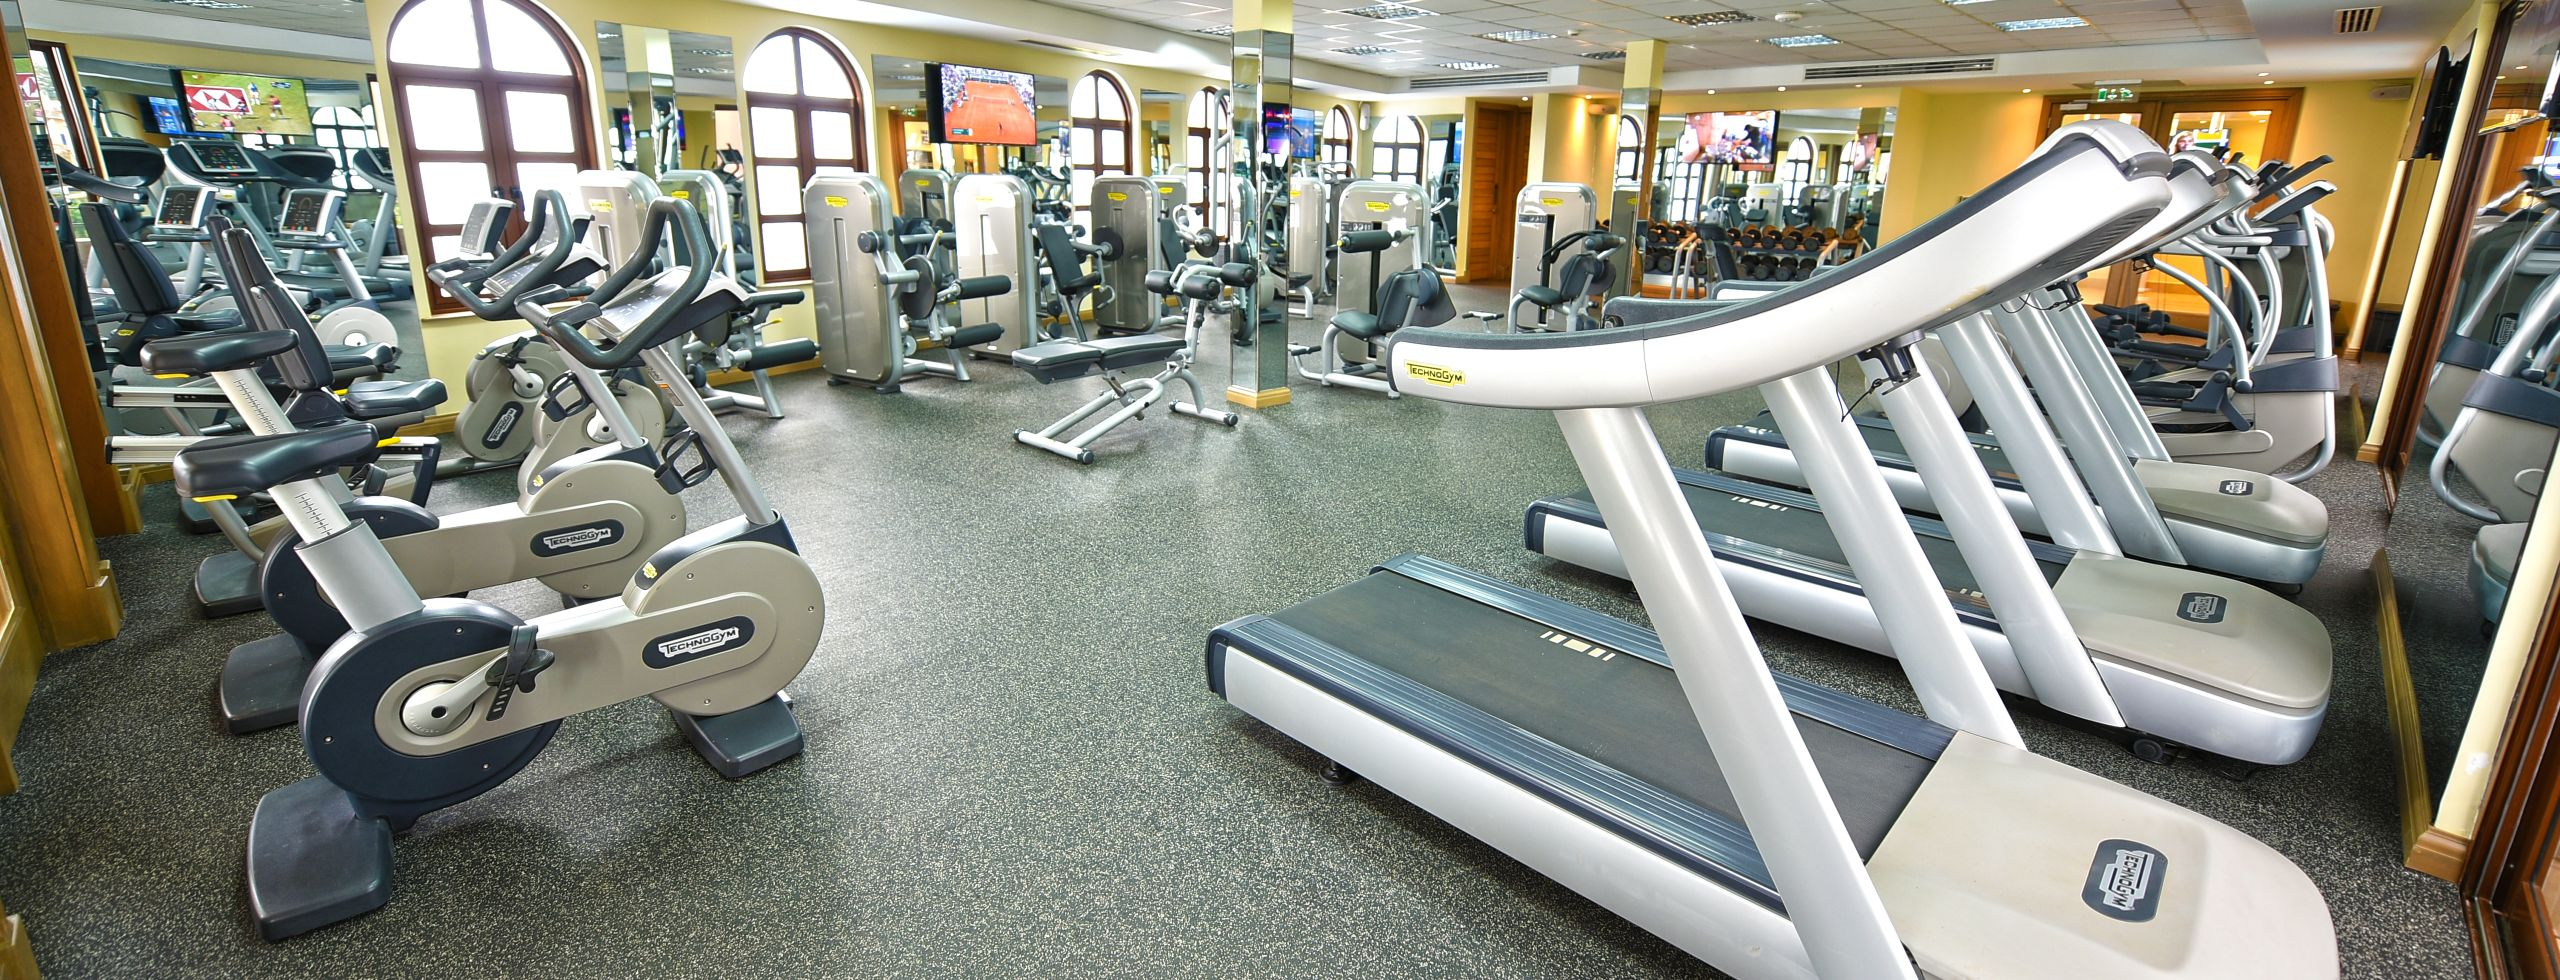 Services Gym 1 equipment